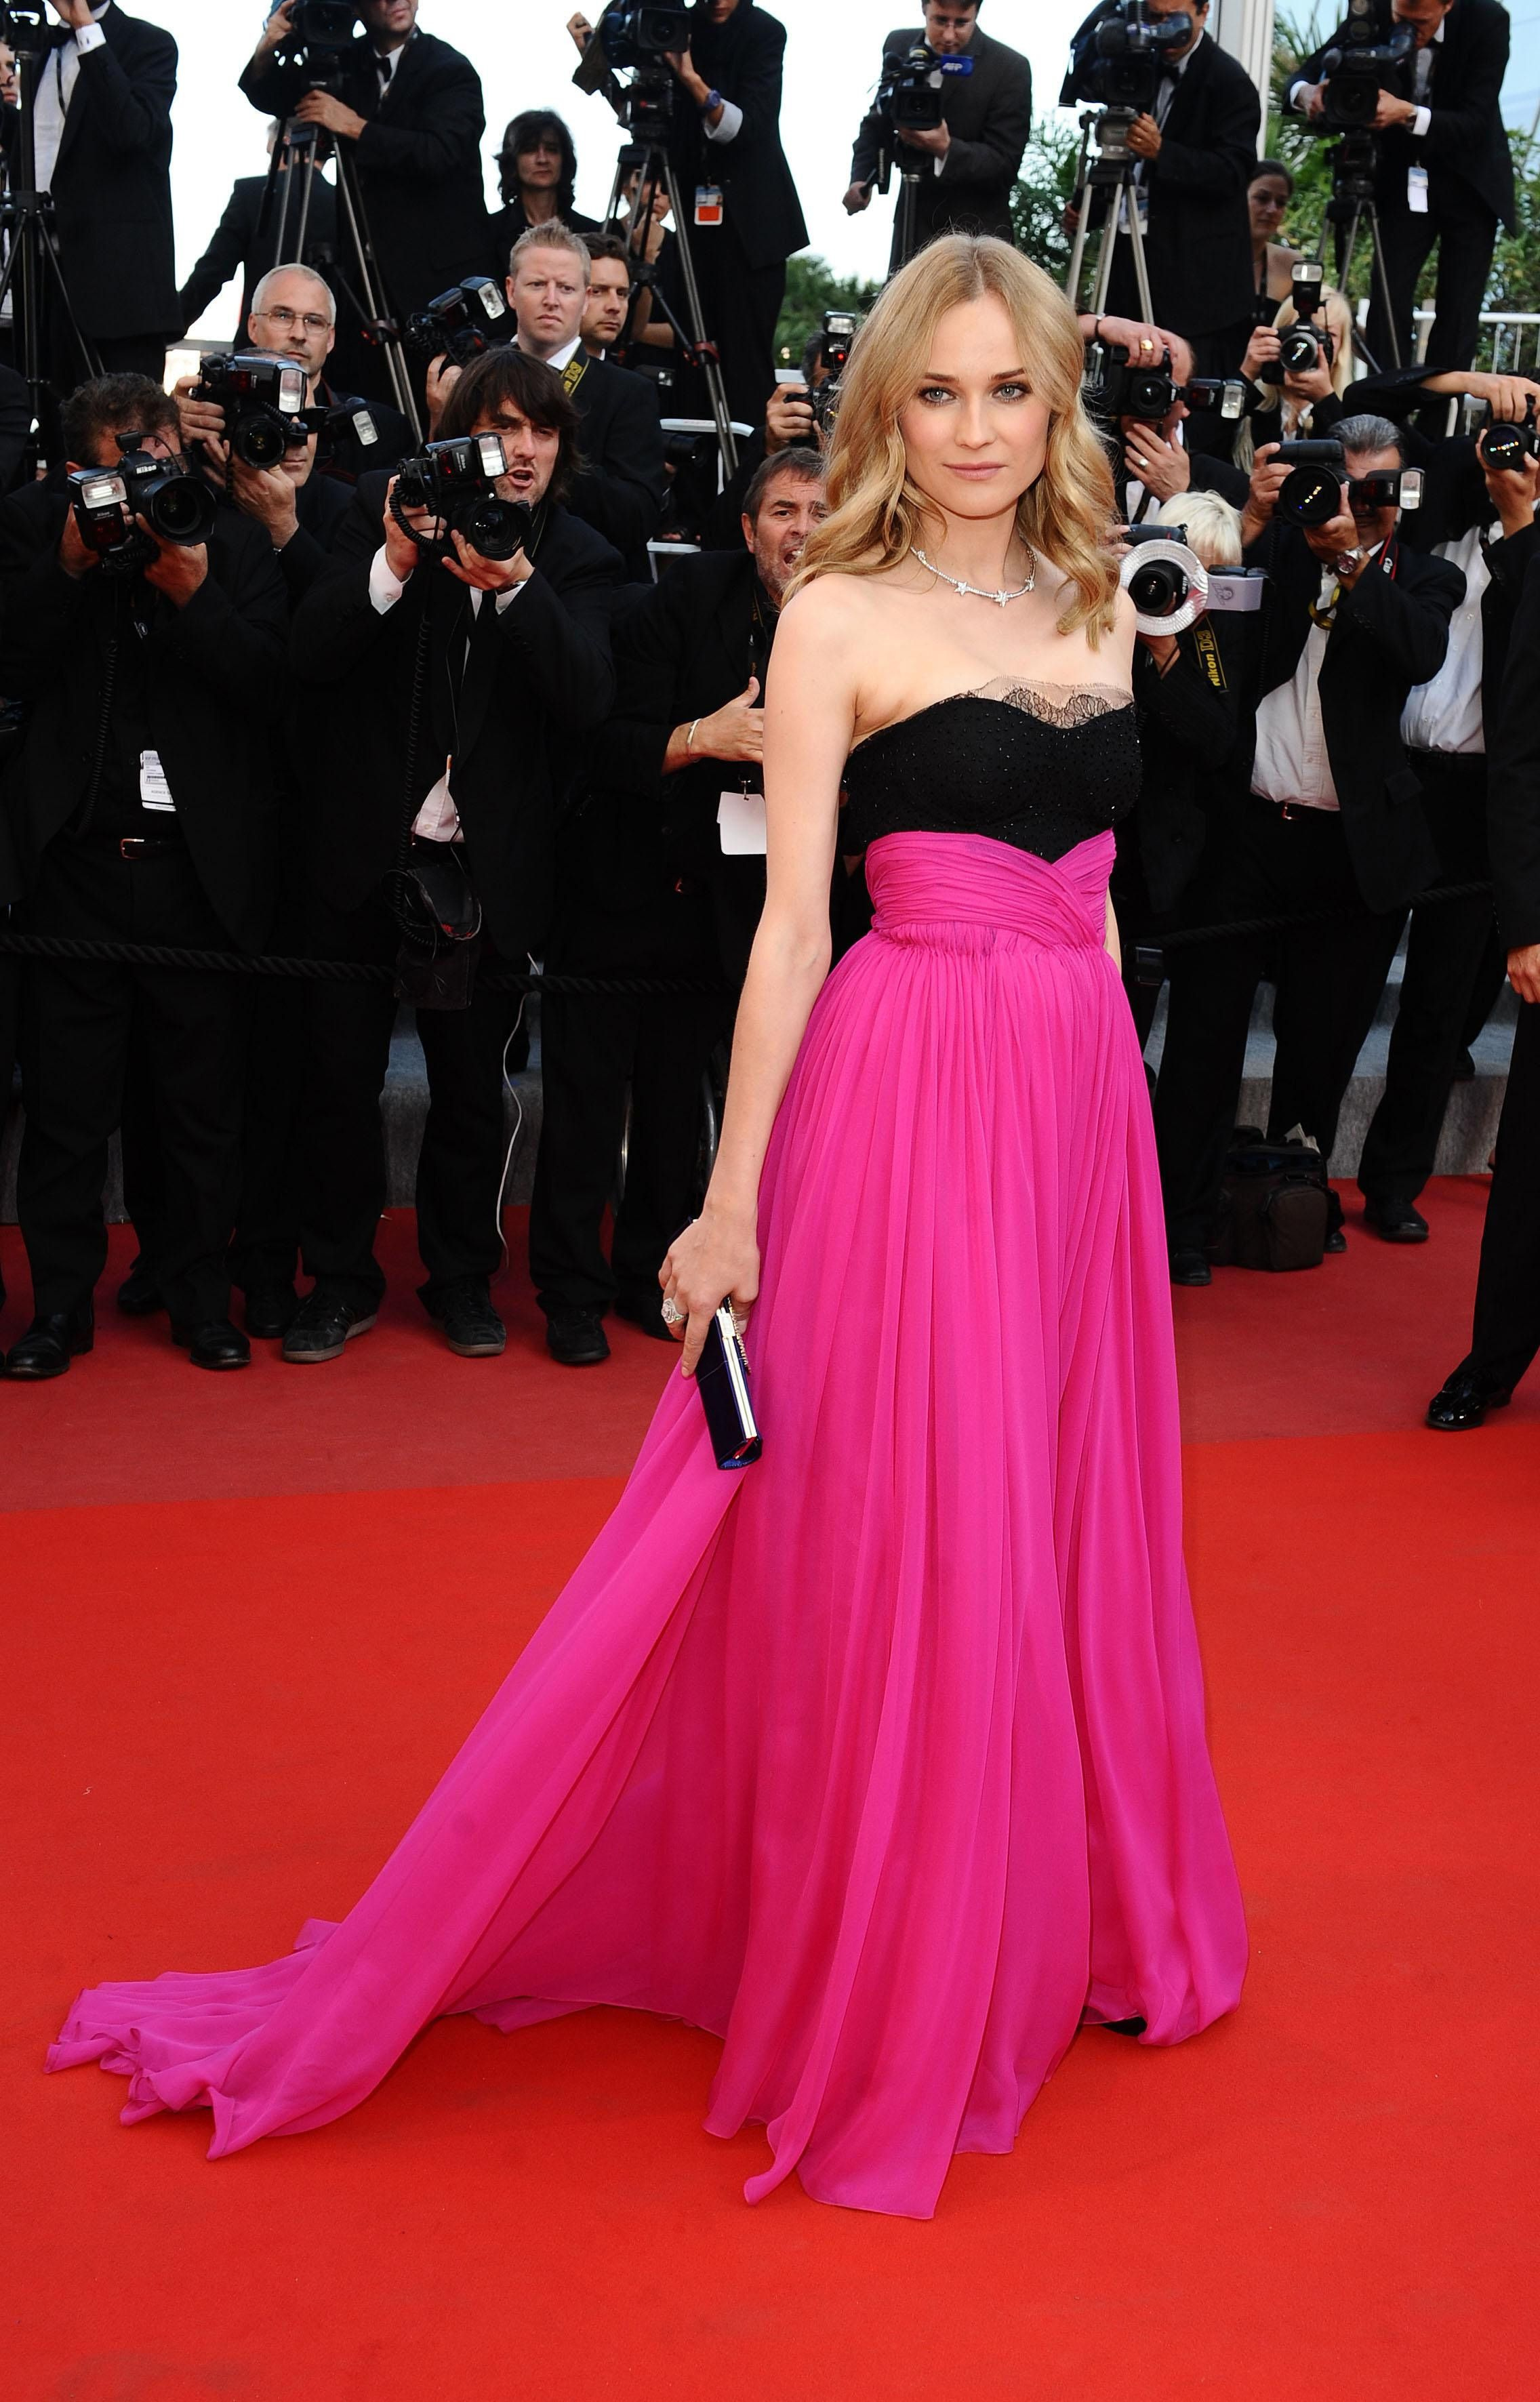 Diane Kruger black and hot pink dress at Cannes | Stylissima in 2018 ...